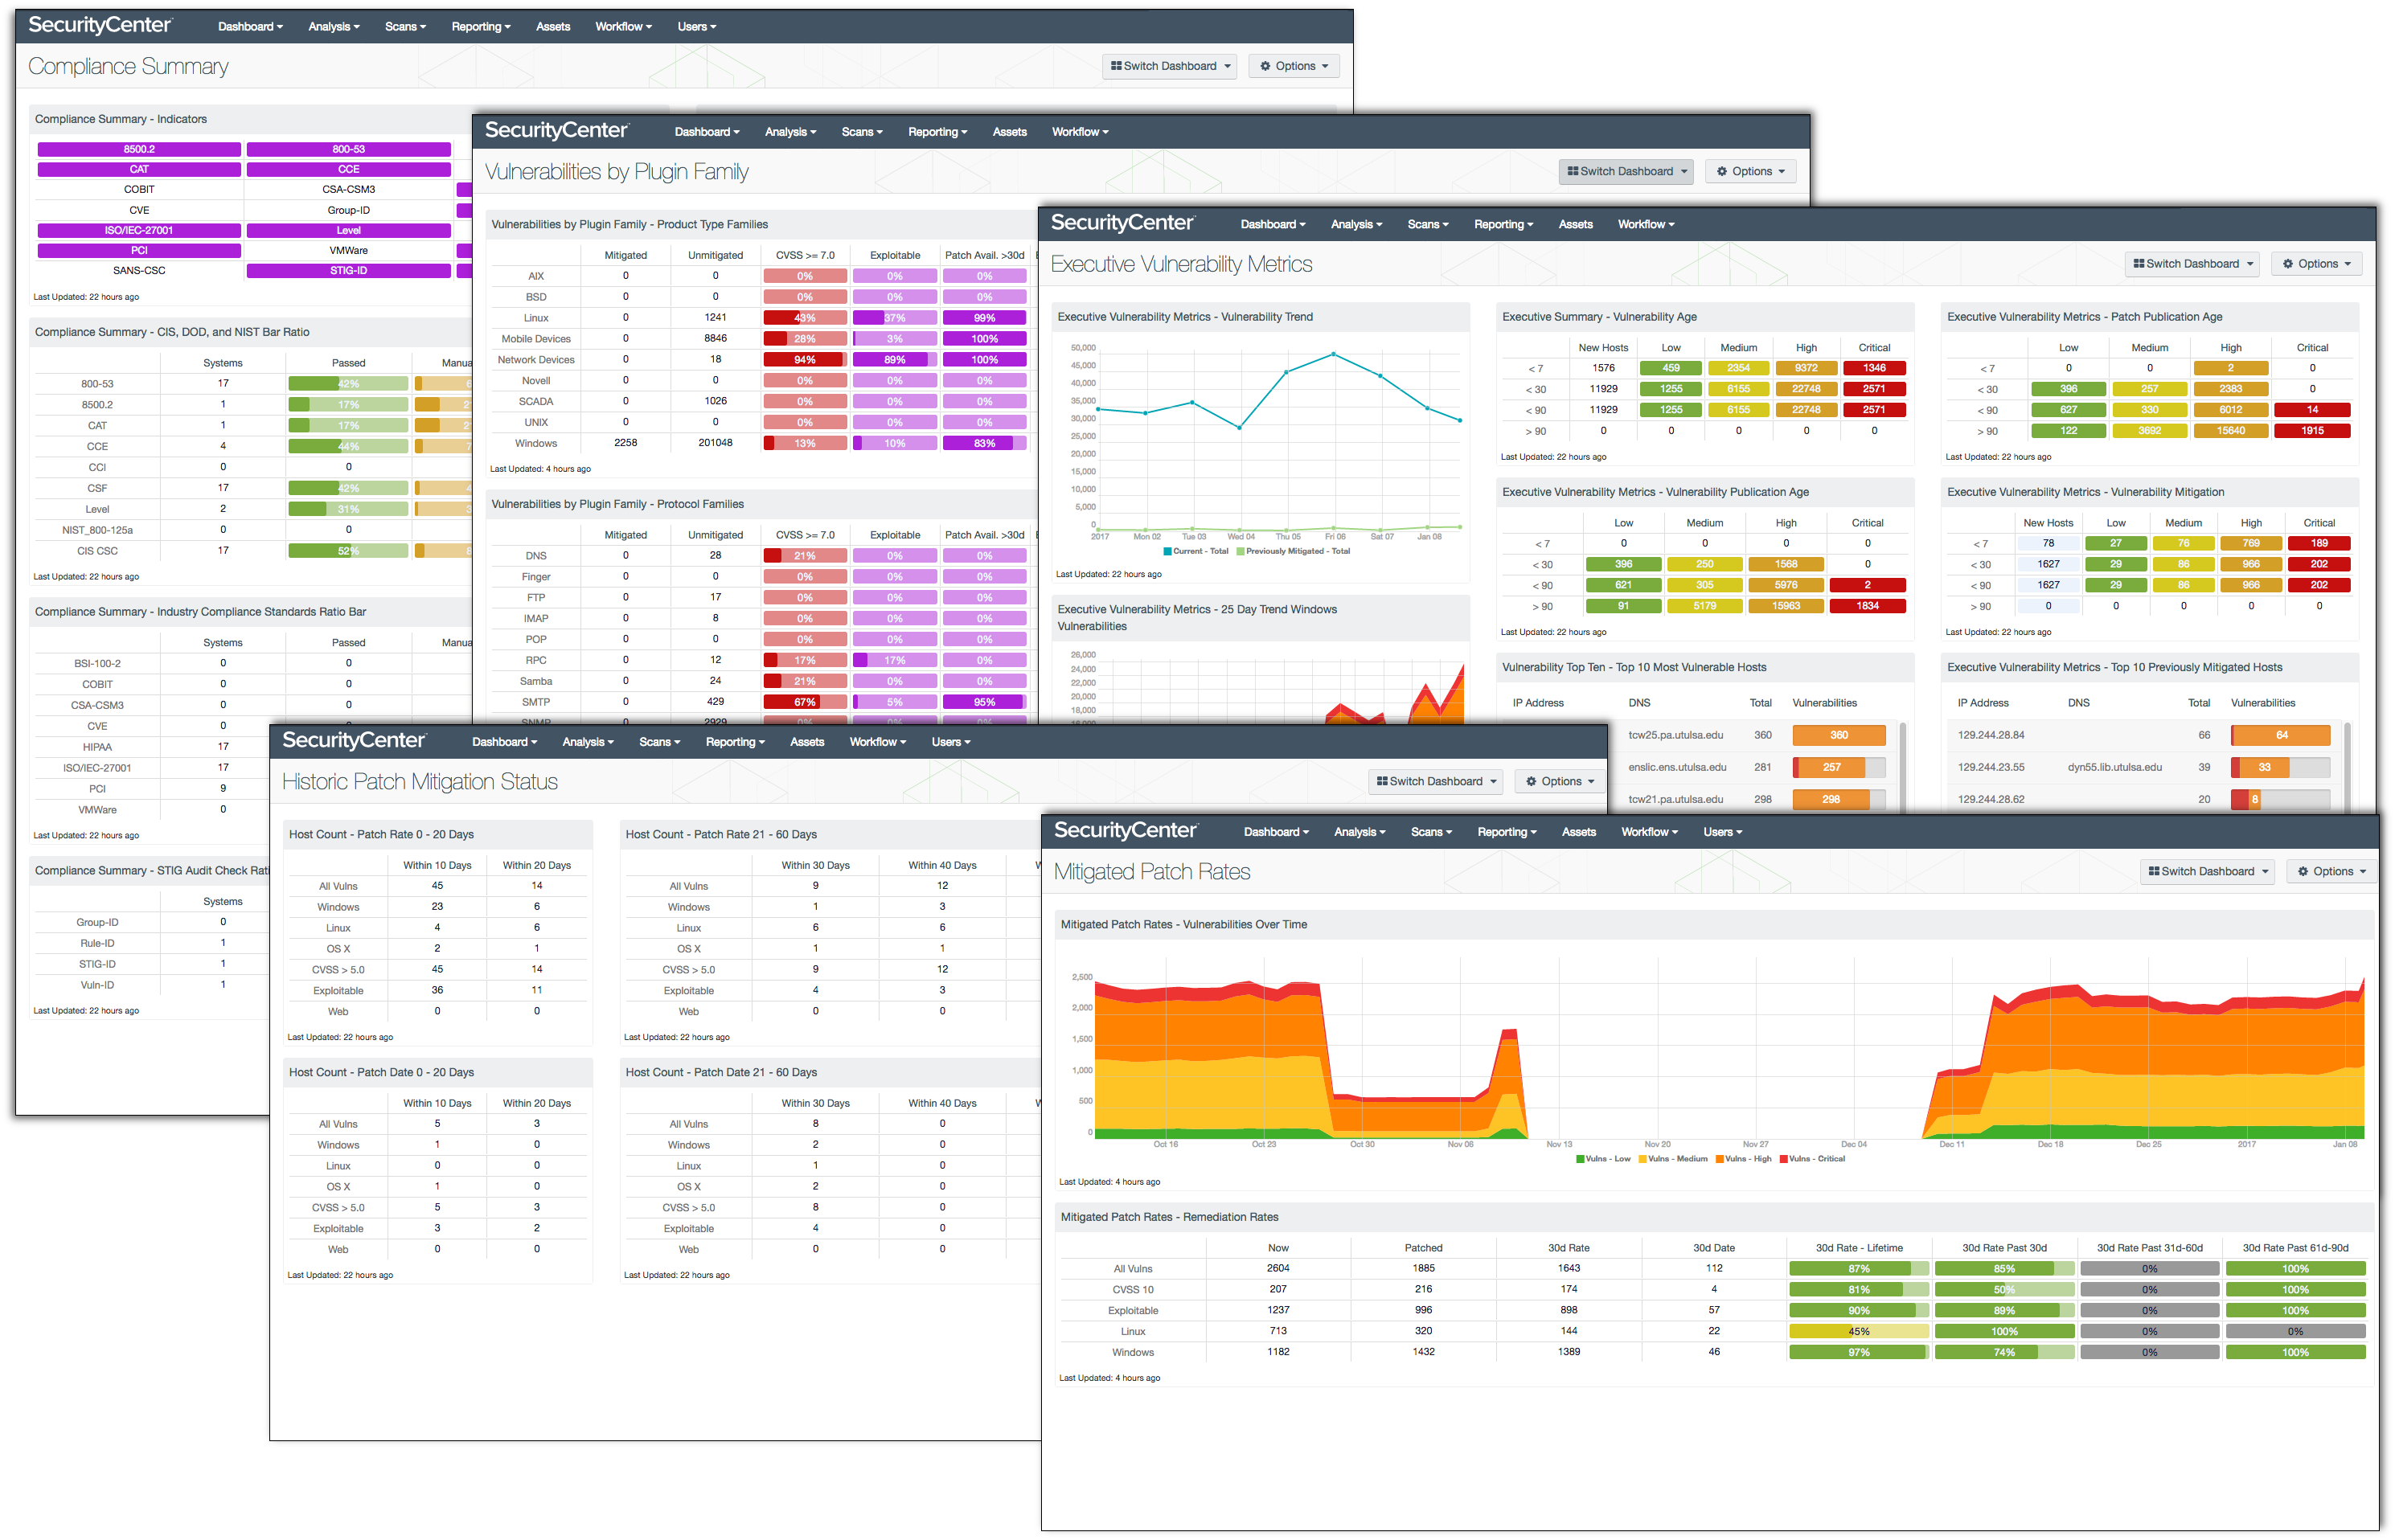 Five SecurityCenter dashboards for vulnerability management